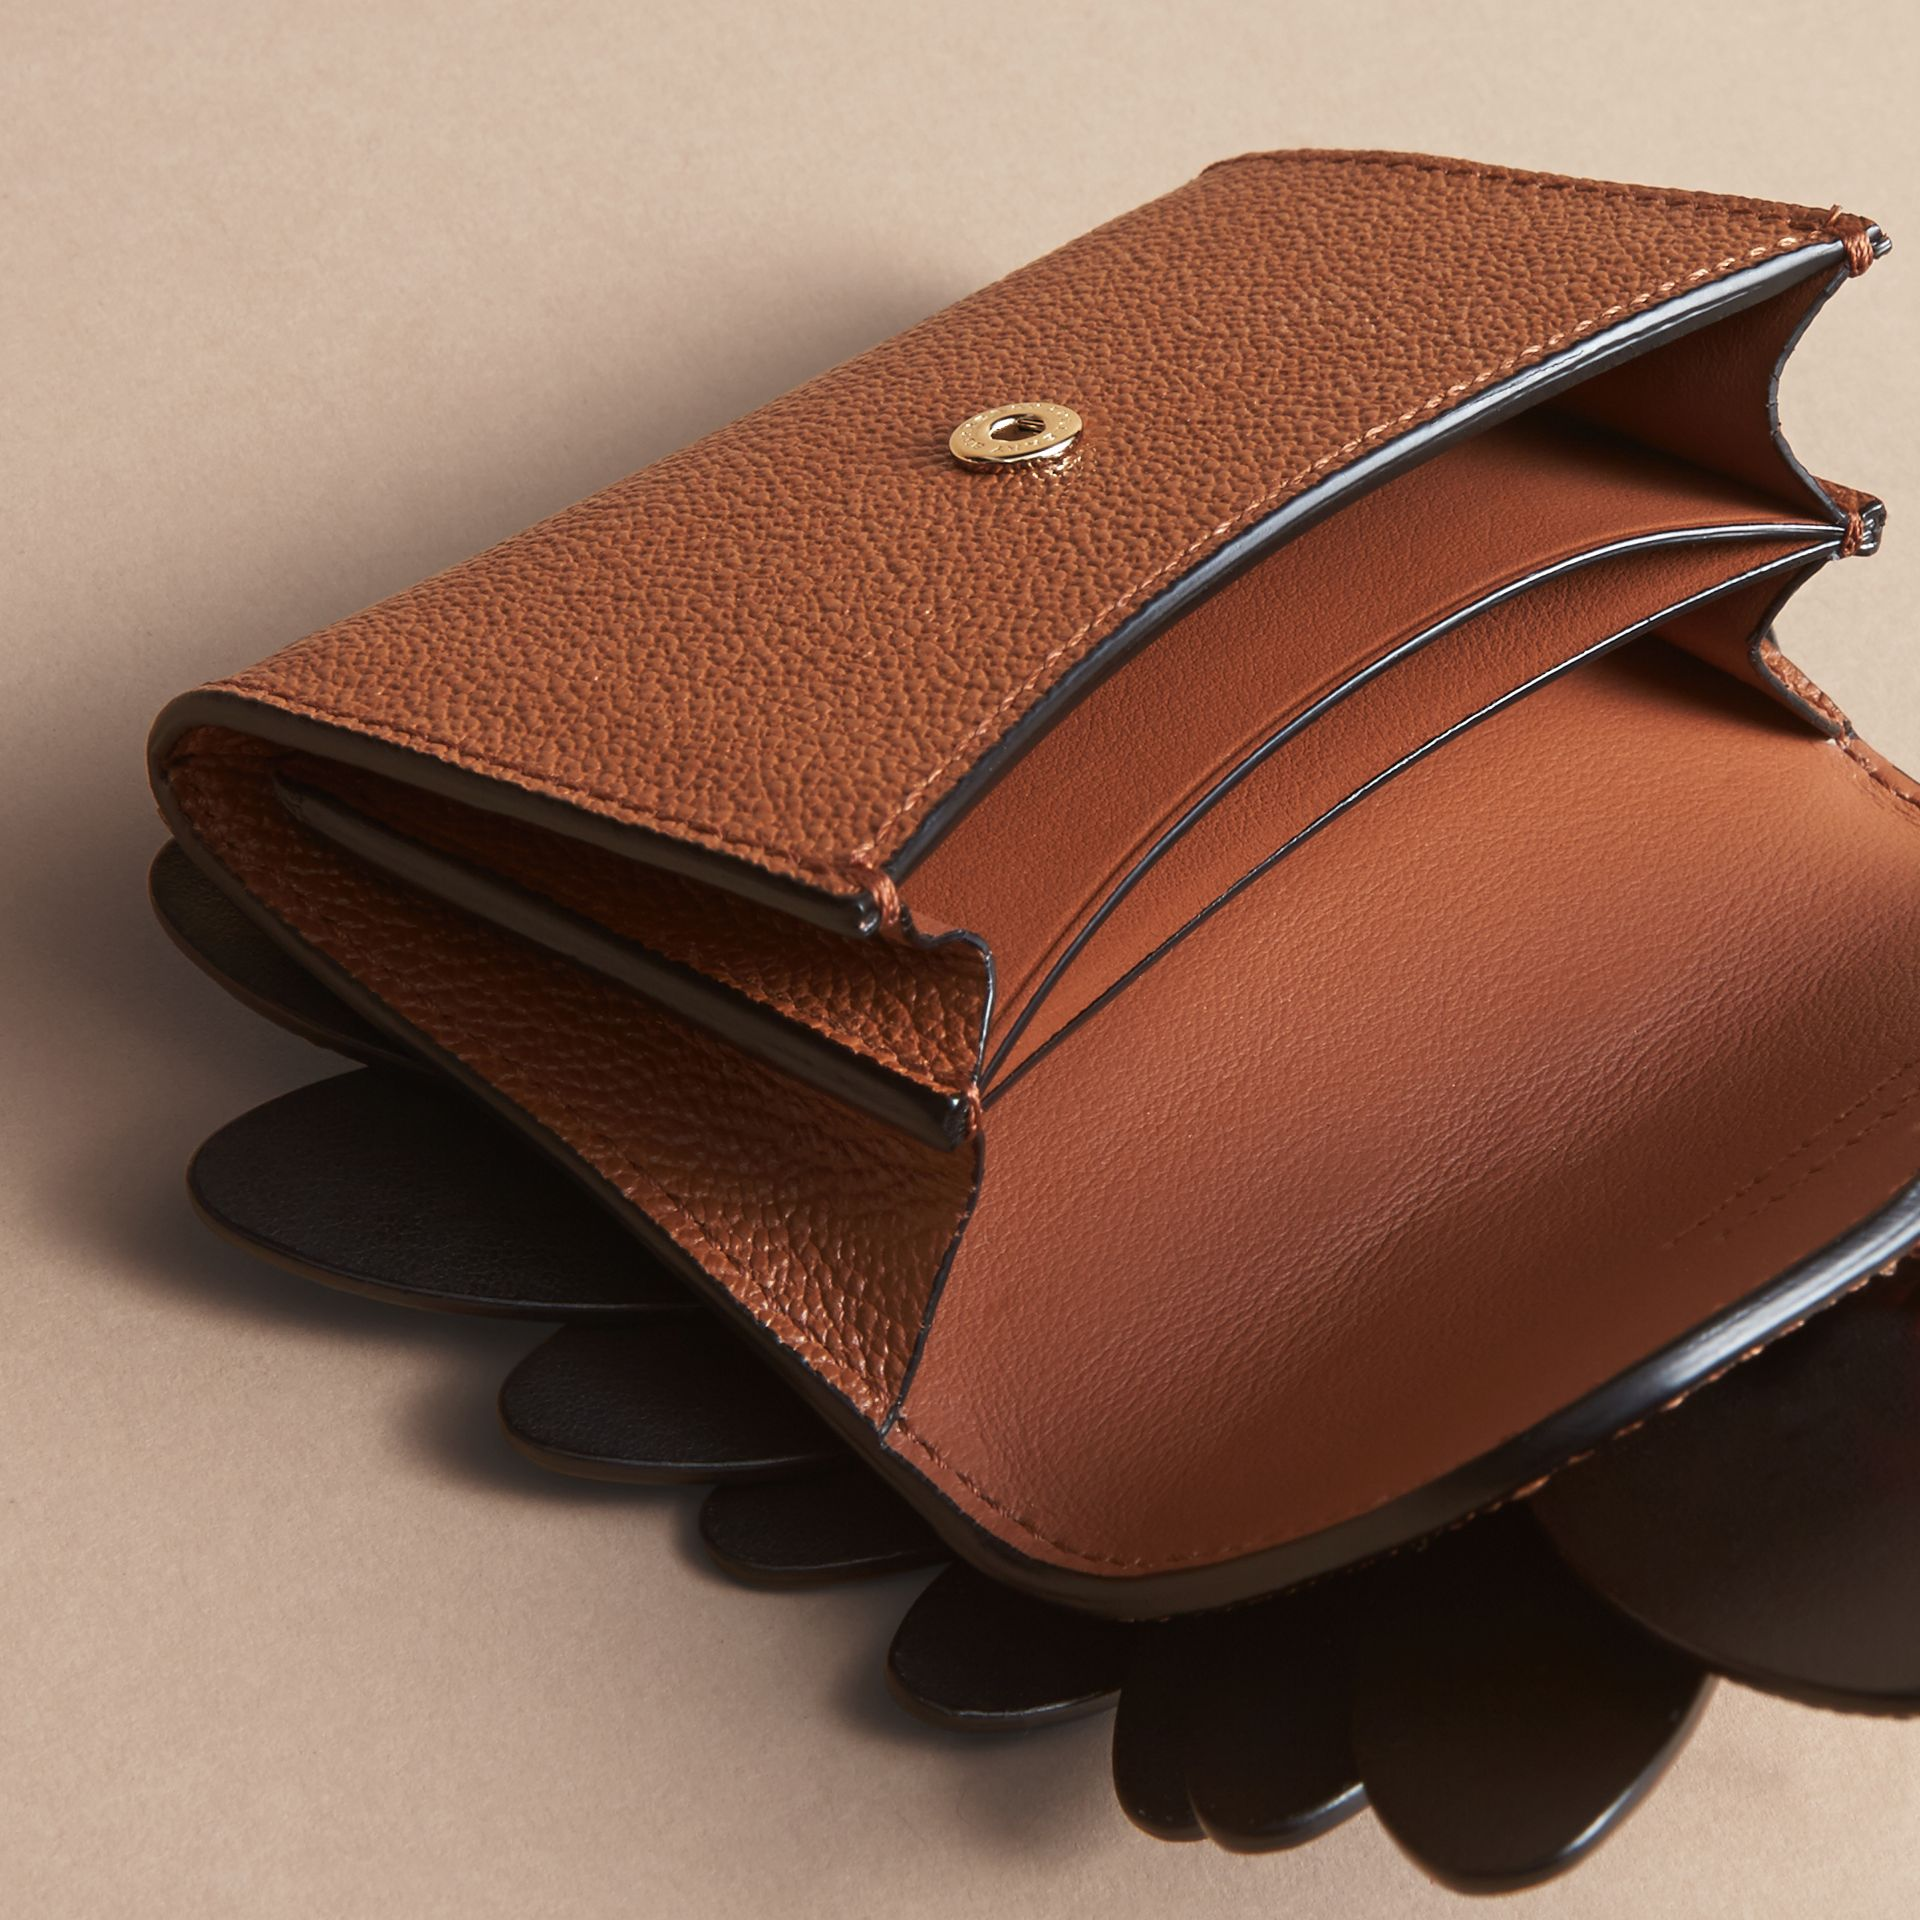 Snakeskin and Leather Appliqué Card Case in Bright Toffee - Women | Burberry Singapore - gallery image 4